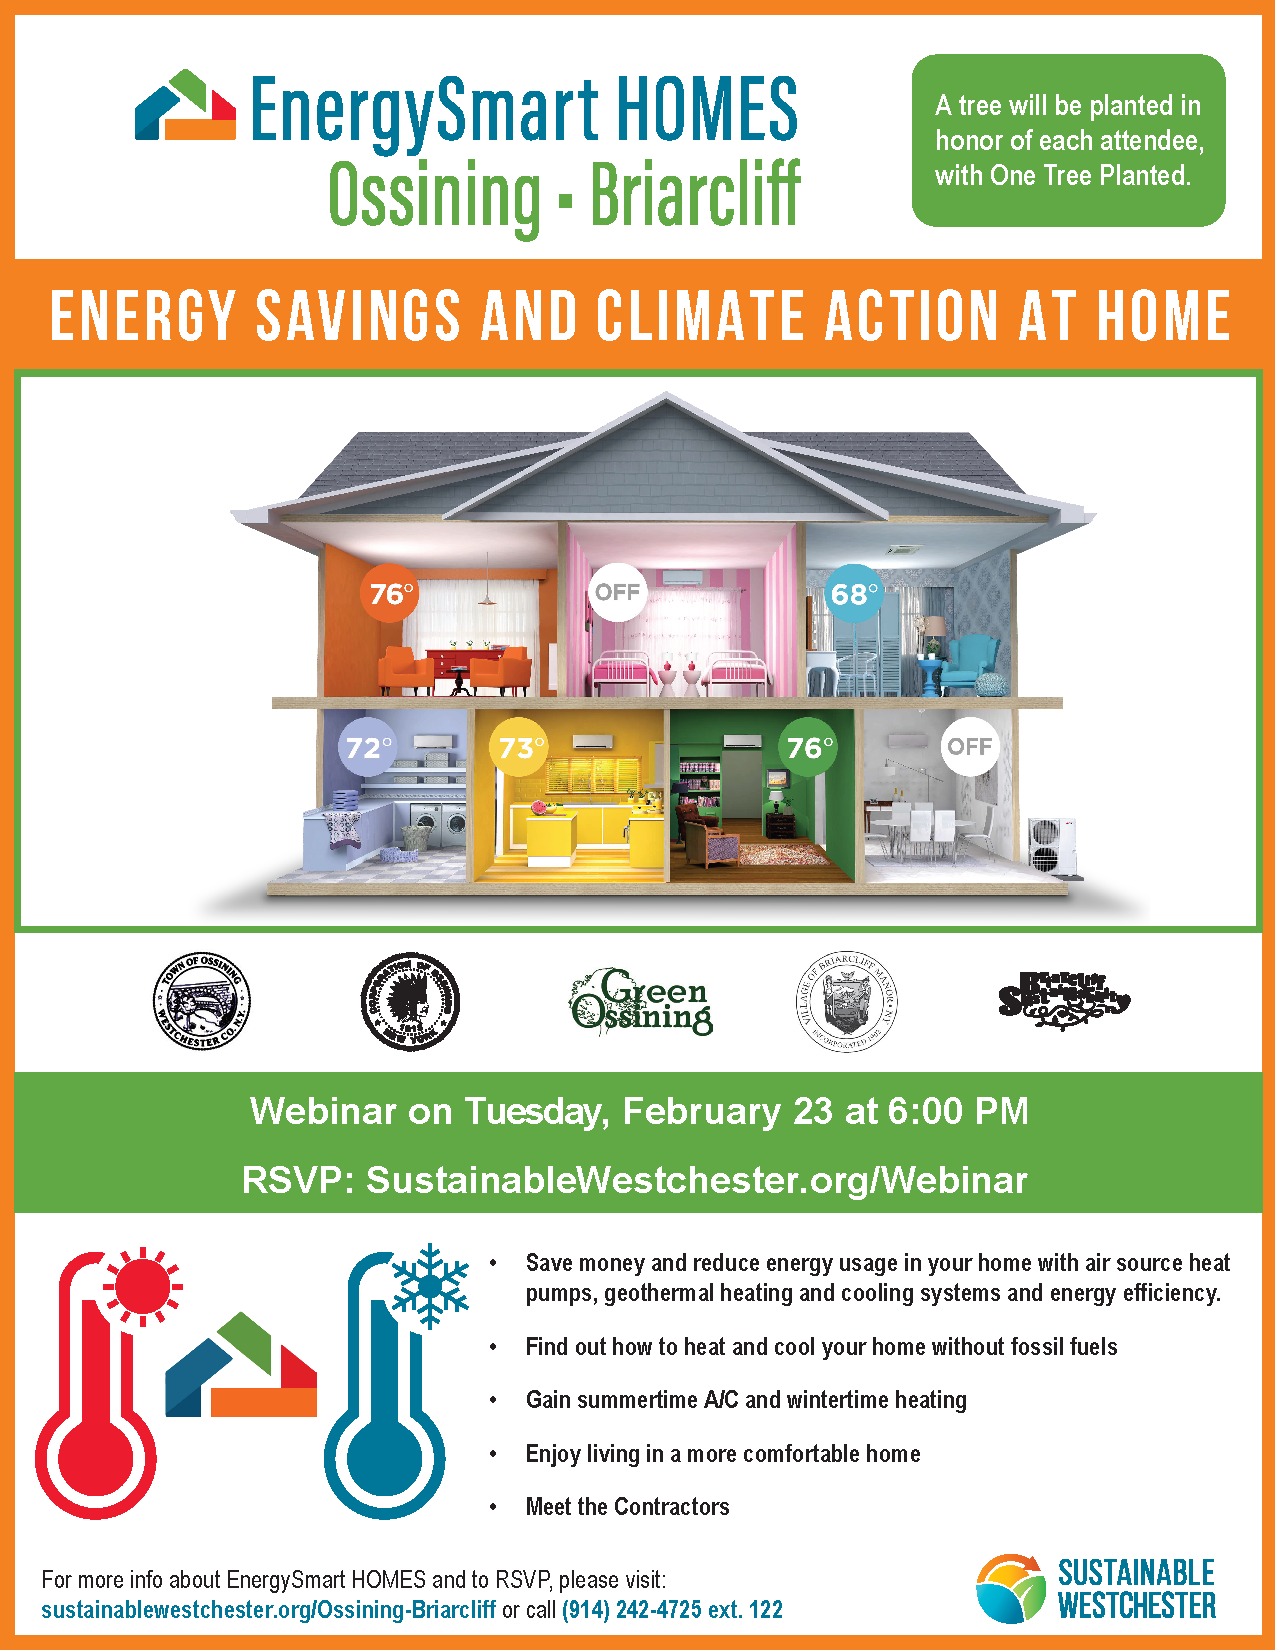 Tuesday, February 23, 6:00pm-7:00pm. Q&A 7:00pm-7:30pm Energy Savings and Climate Action at Home